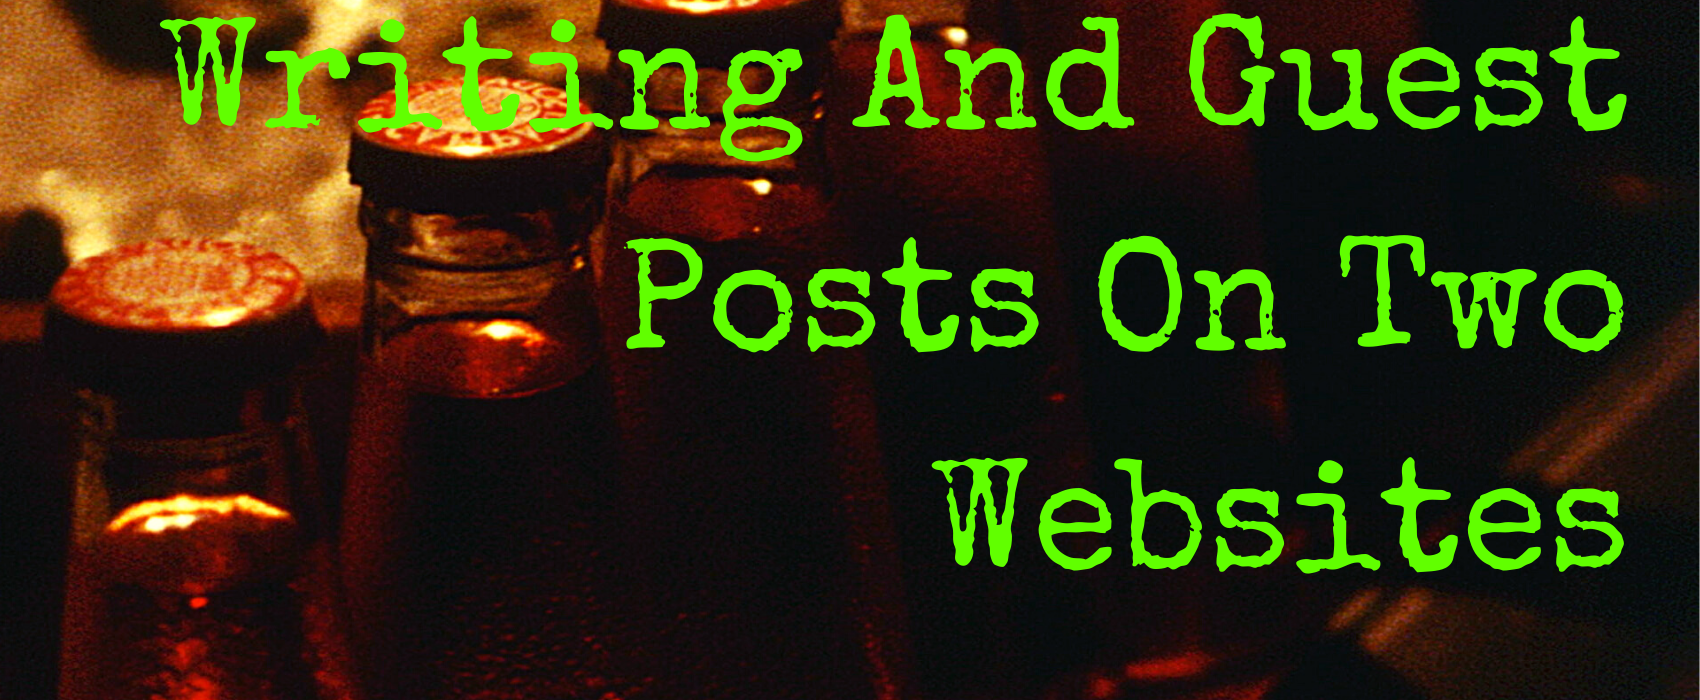 Writing and guest posts on two websites